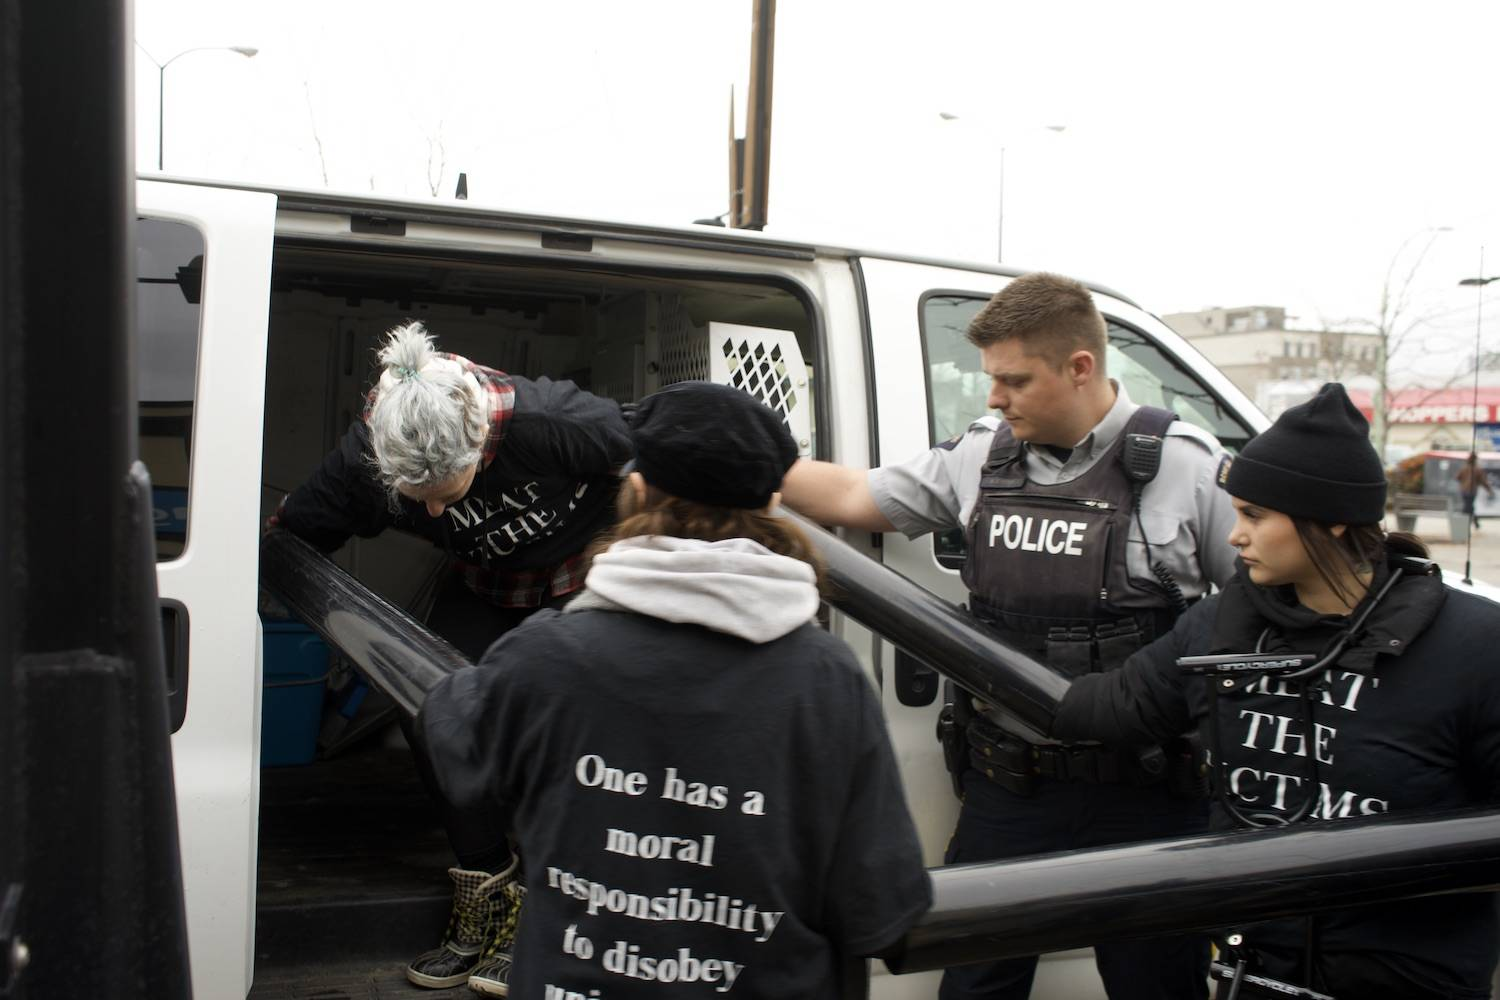 RCMP cut free activists chained to Kelowna bank, placed under arrest